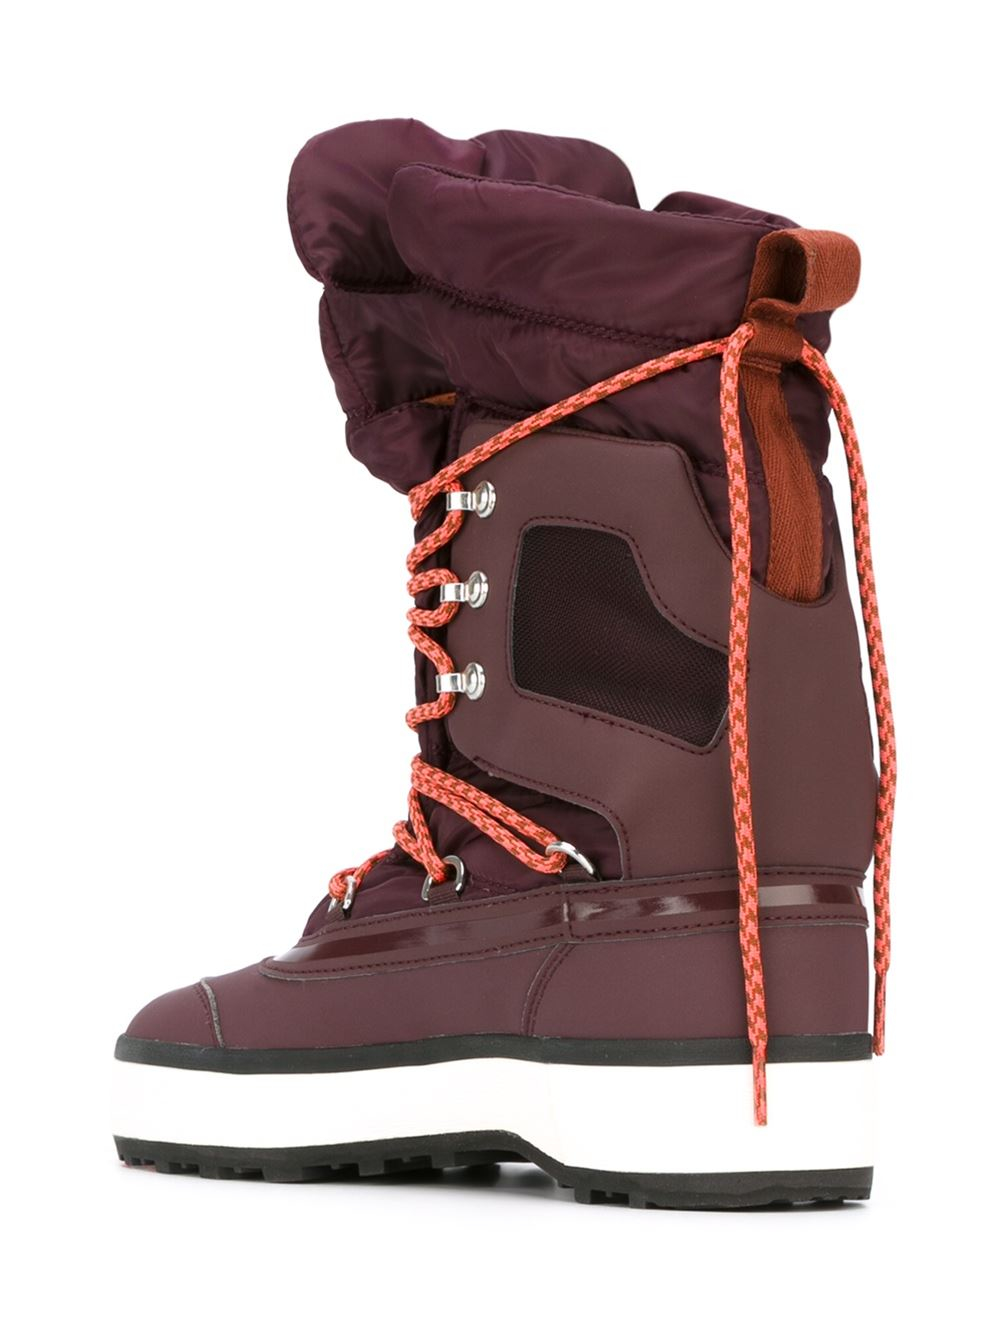 Lyst - Adidas By Stella Mccartney Winter Quilted Snow